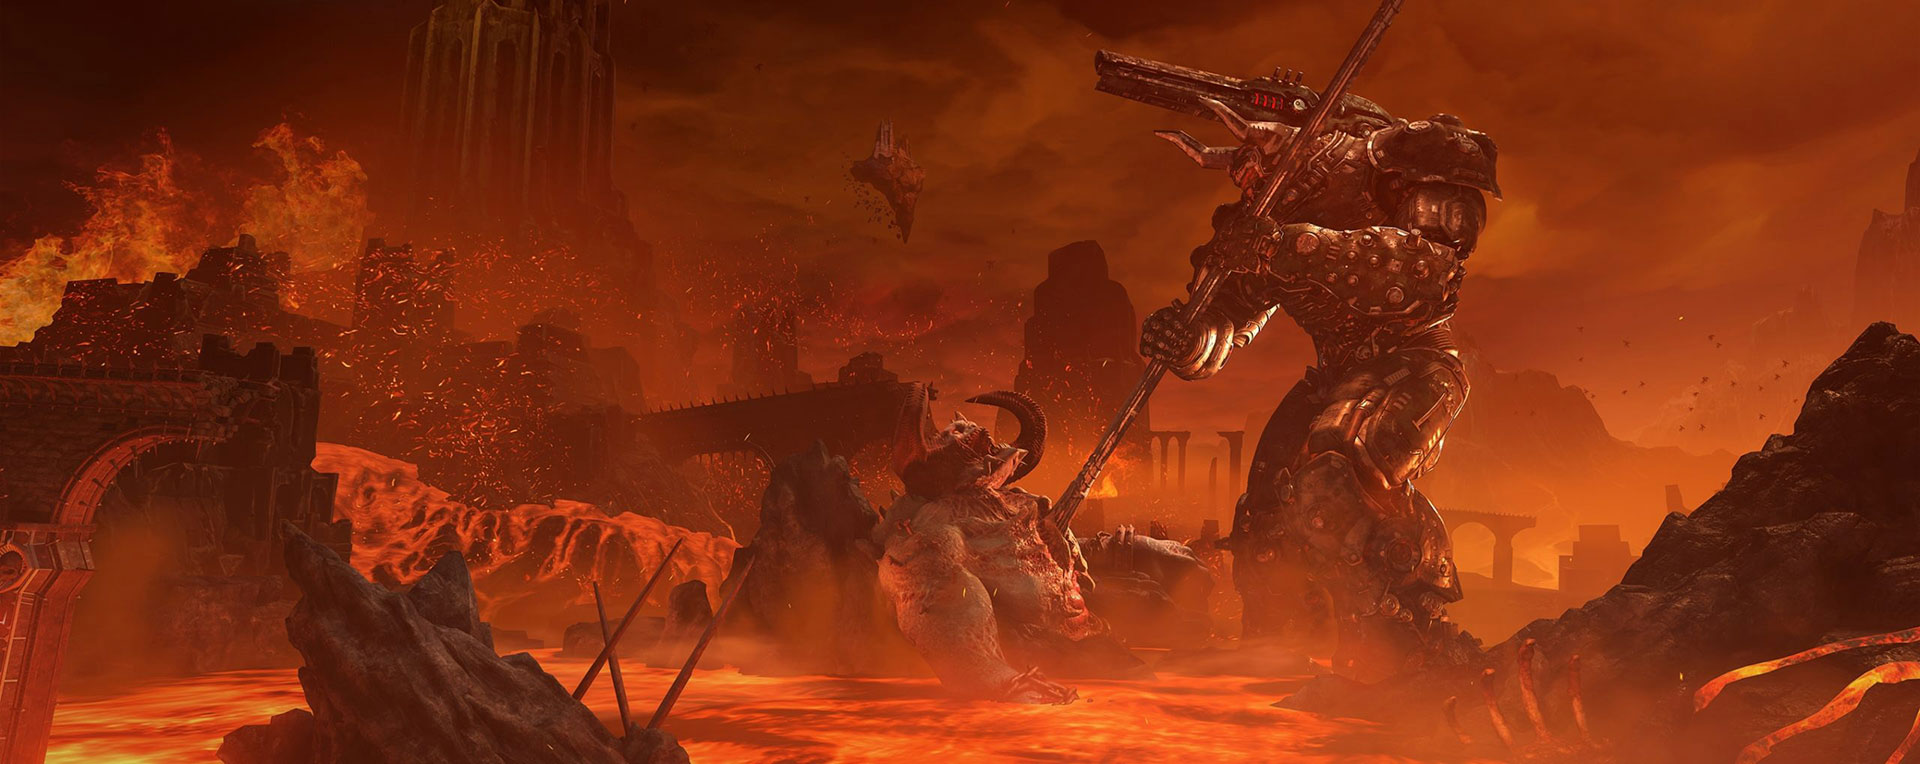 One of the badass environments featured in Doom: Eternal.